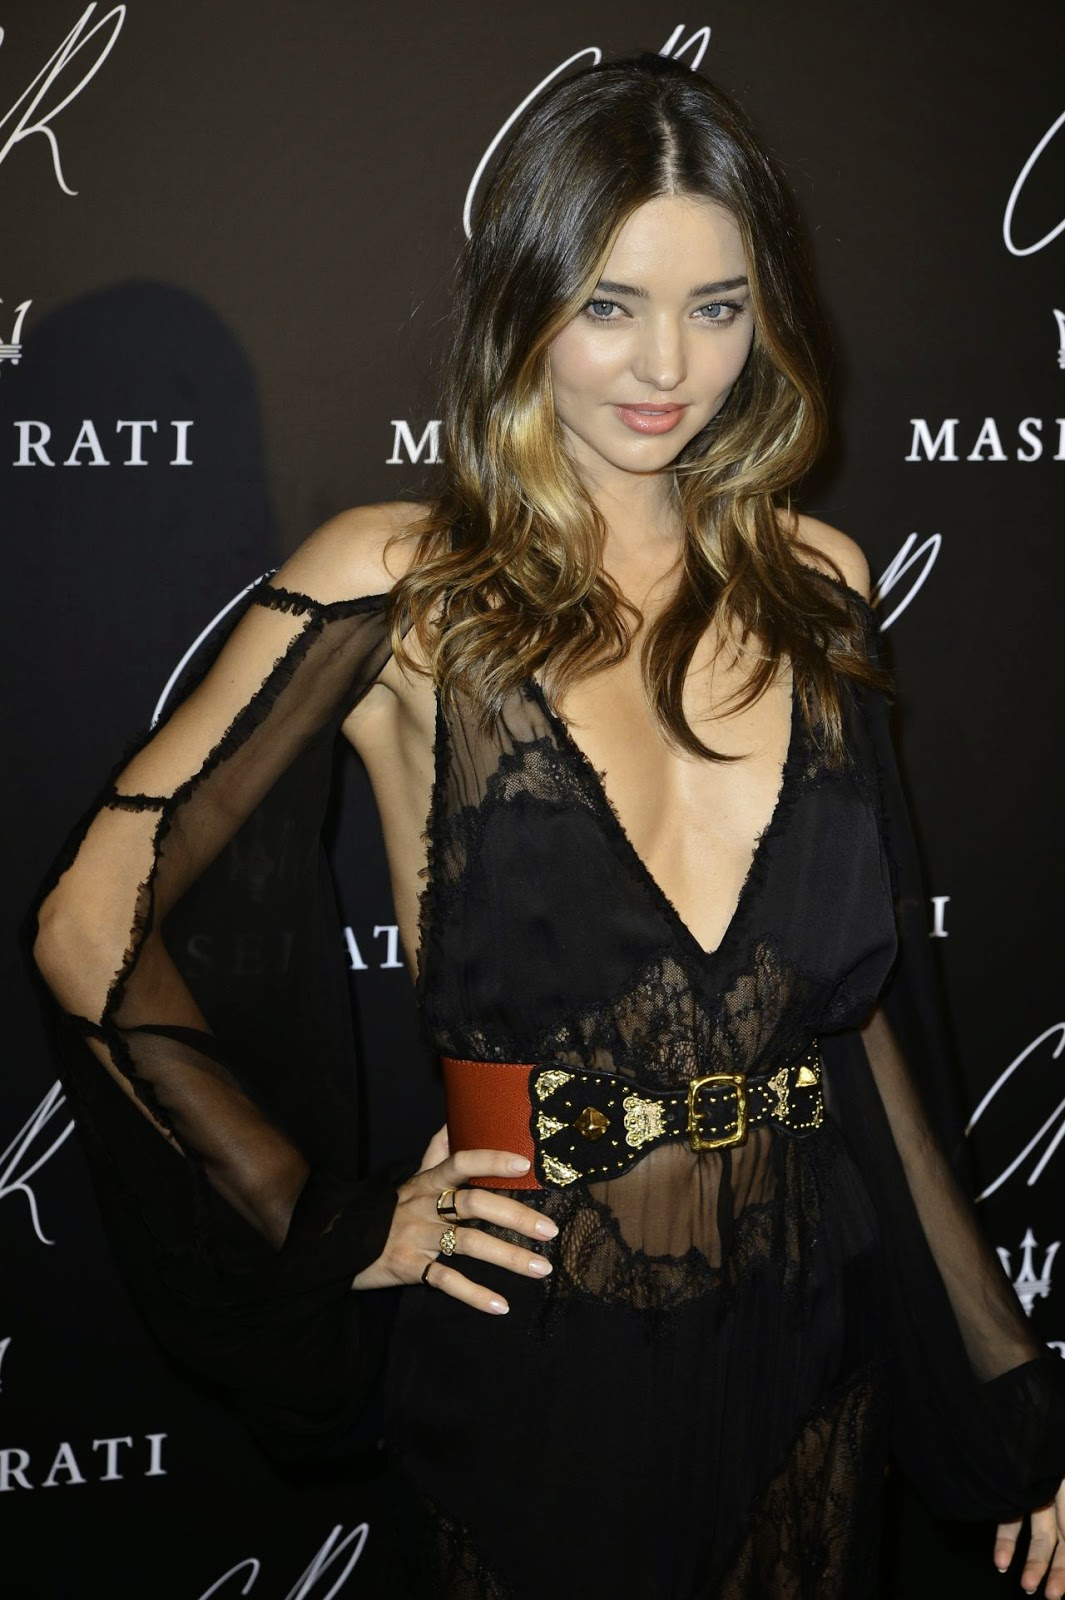 Miranda Kerr stuns in Emilio Pucci at the CR Fashion Book #5 Paris Launch Party